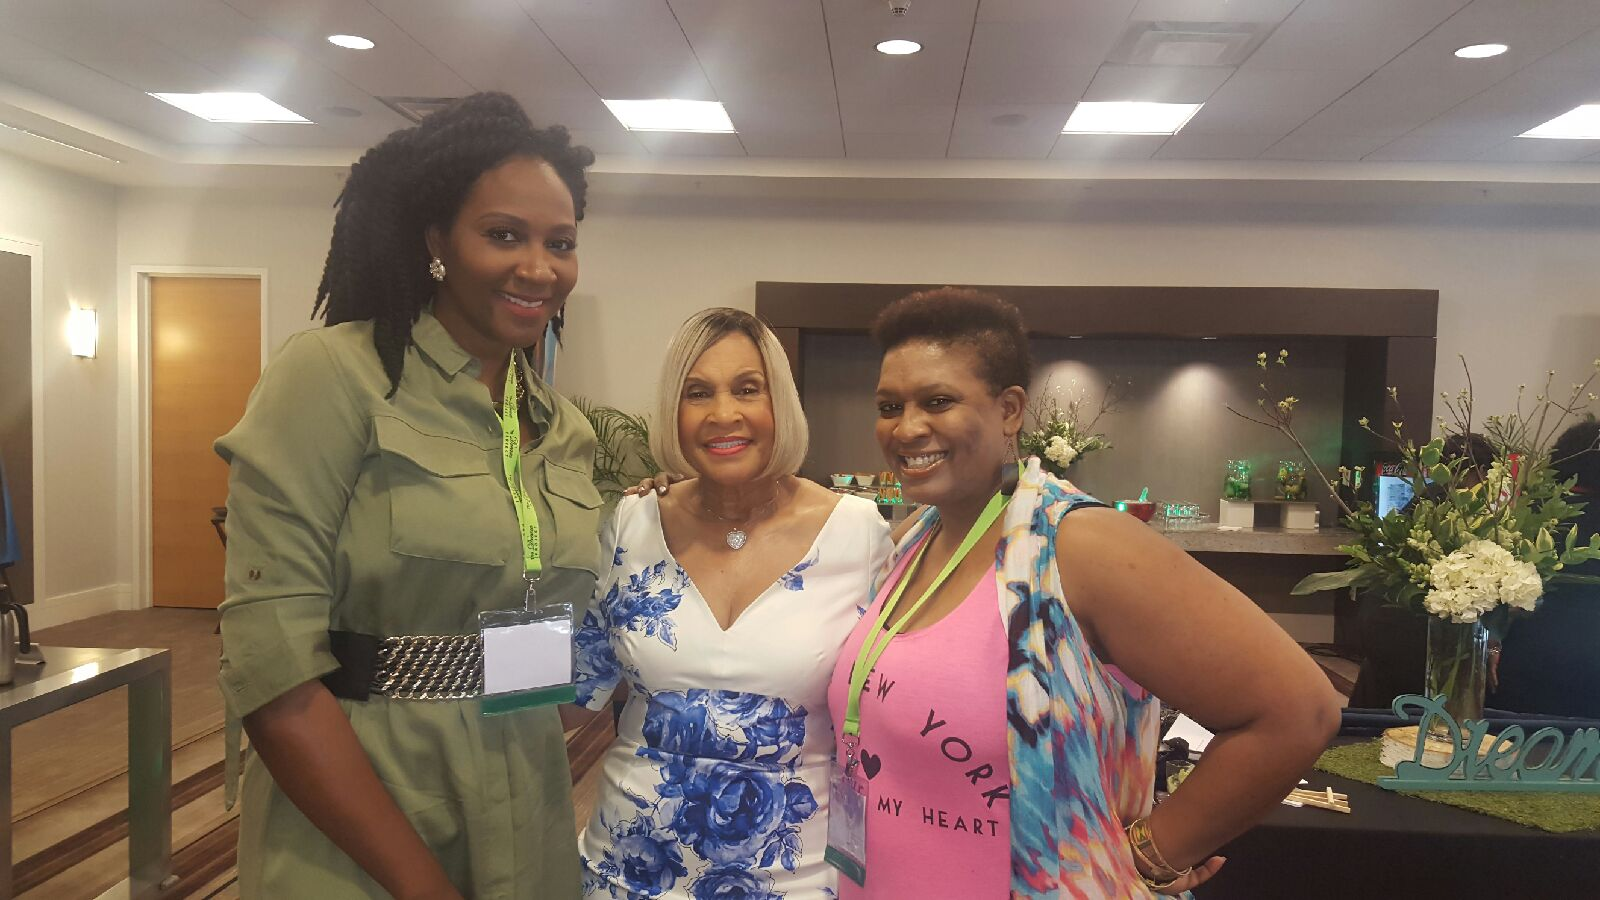 Entertainment host, Anashay, Miss Robbie, and Lisa Gee. Photo courtesy of ConnectingYOUto PR Firm